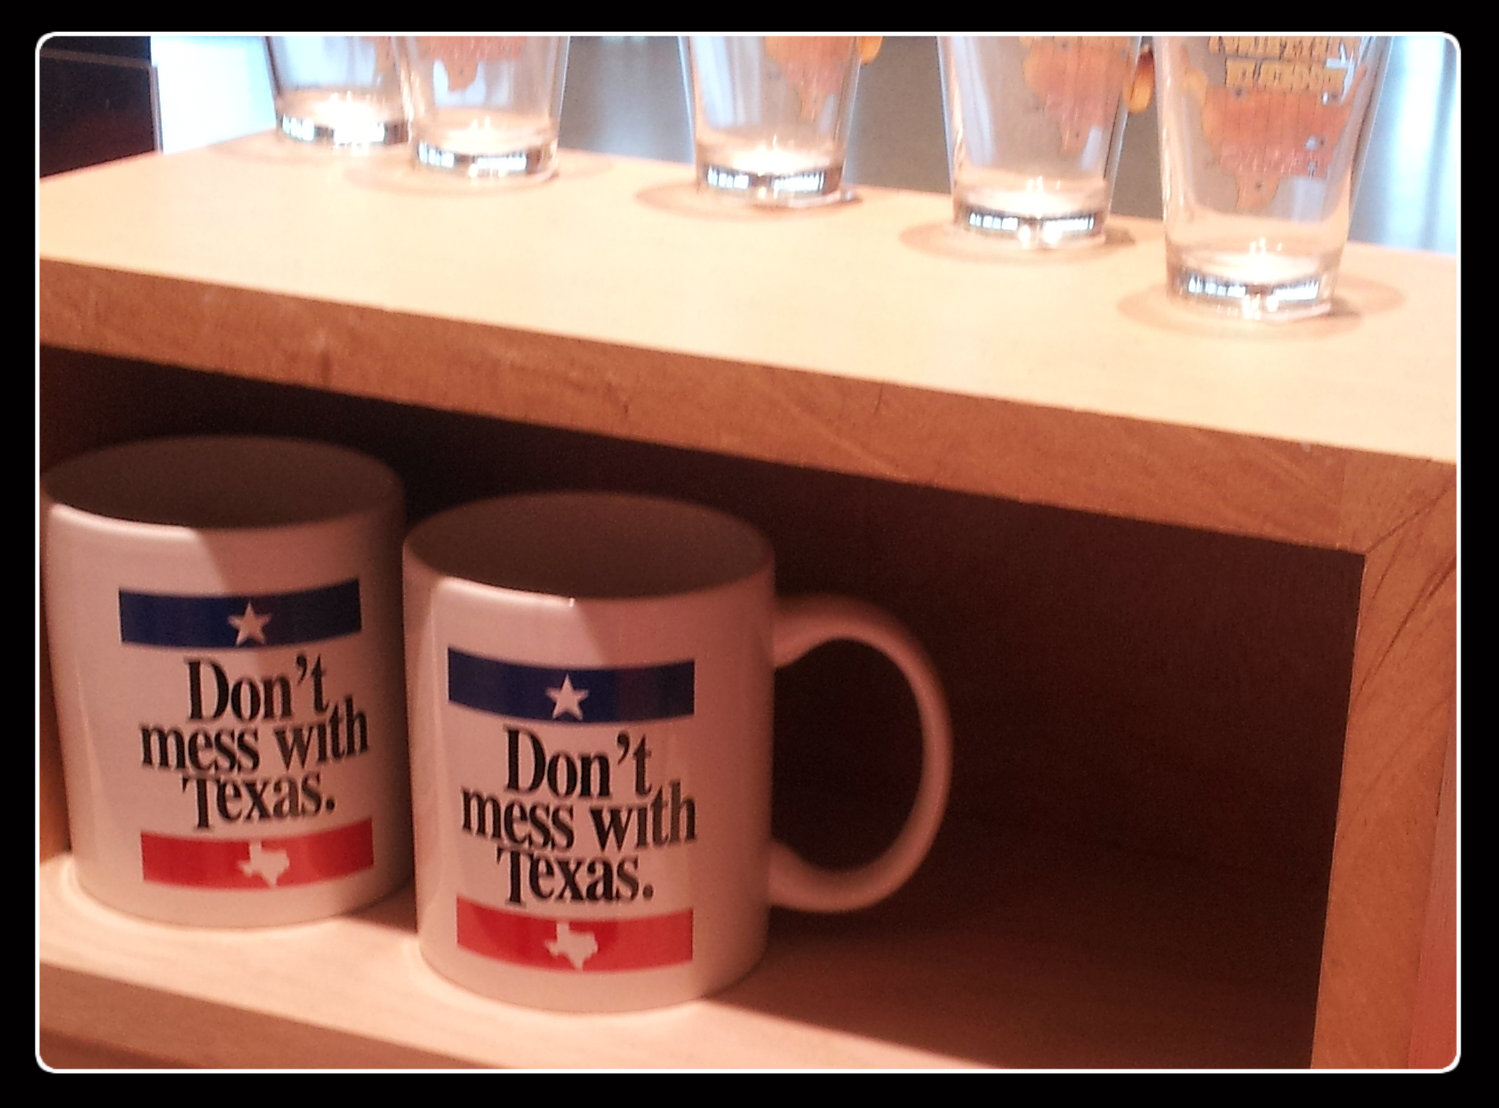 And the tagline is on everything.  Shot glasses, mugs, underwear . . . you name it..